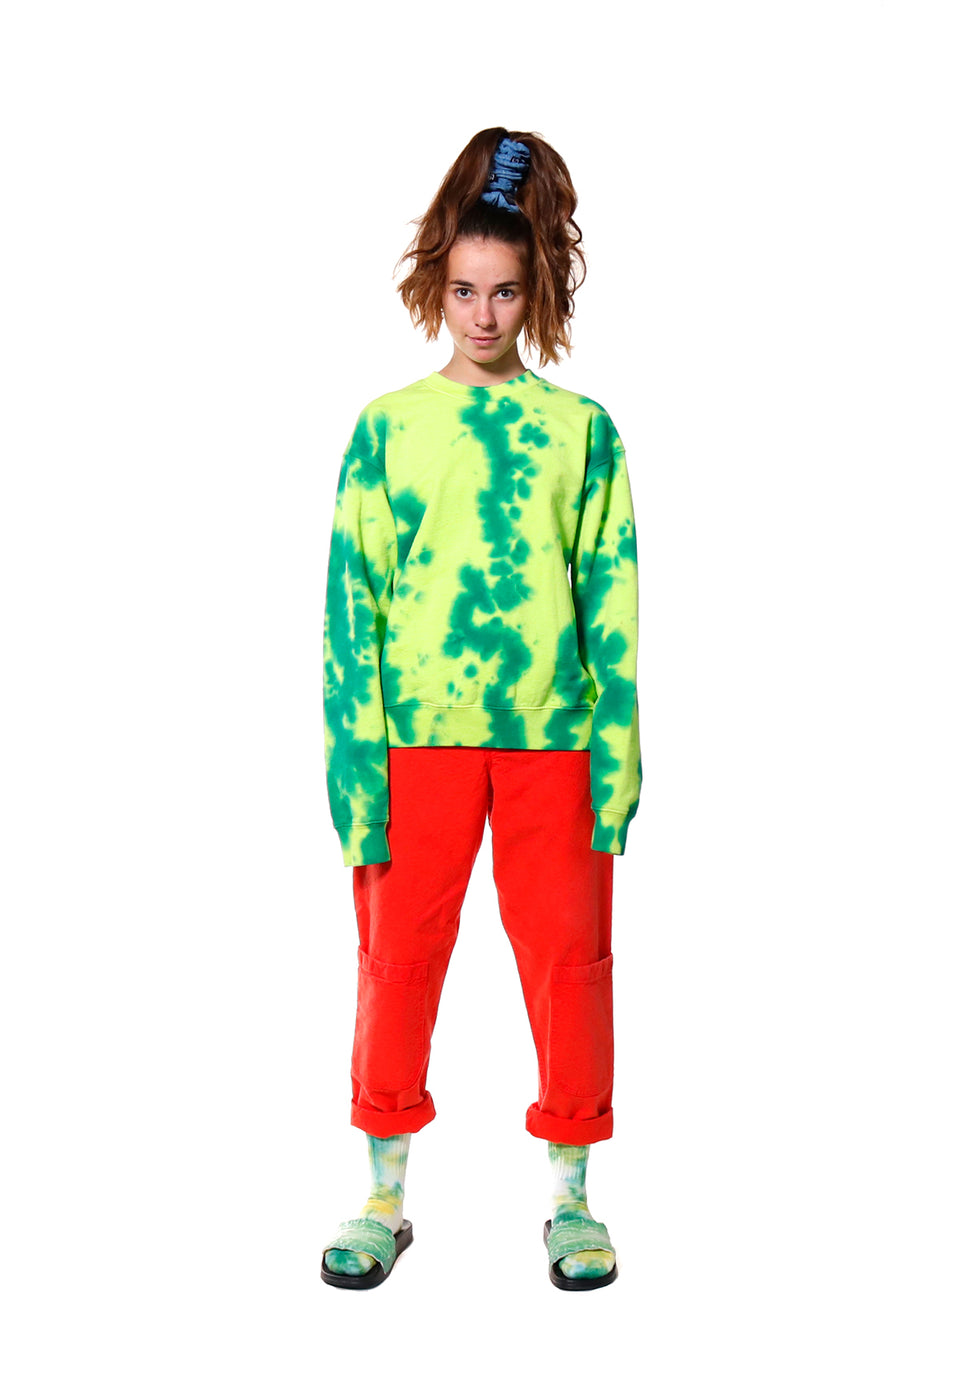 Watermelon Crew Neck Sweatshirt